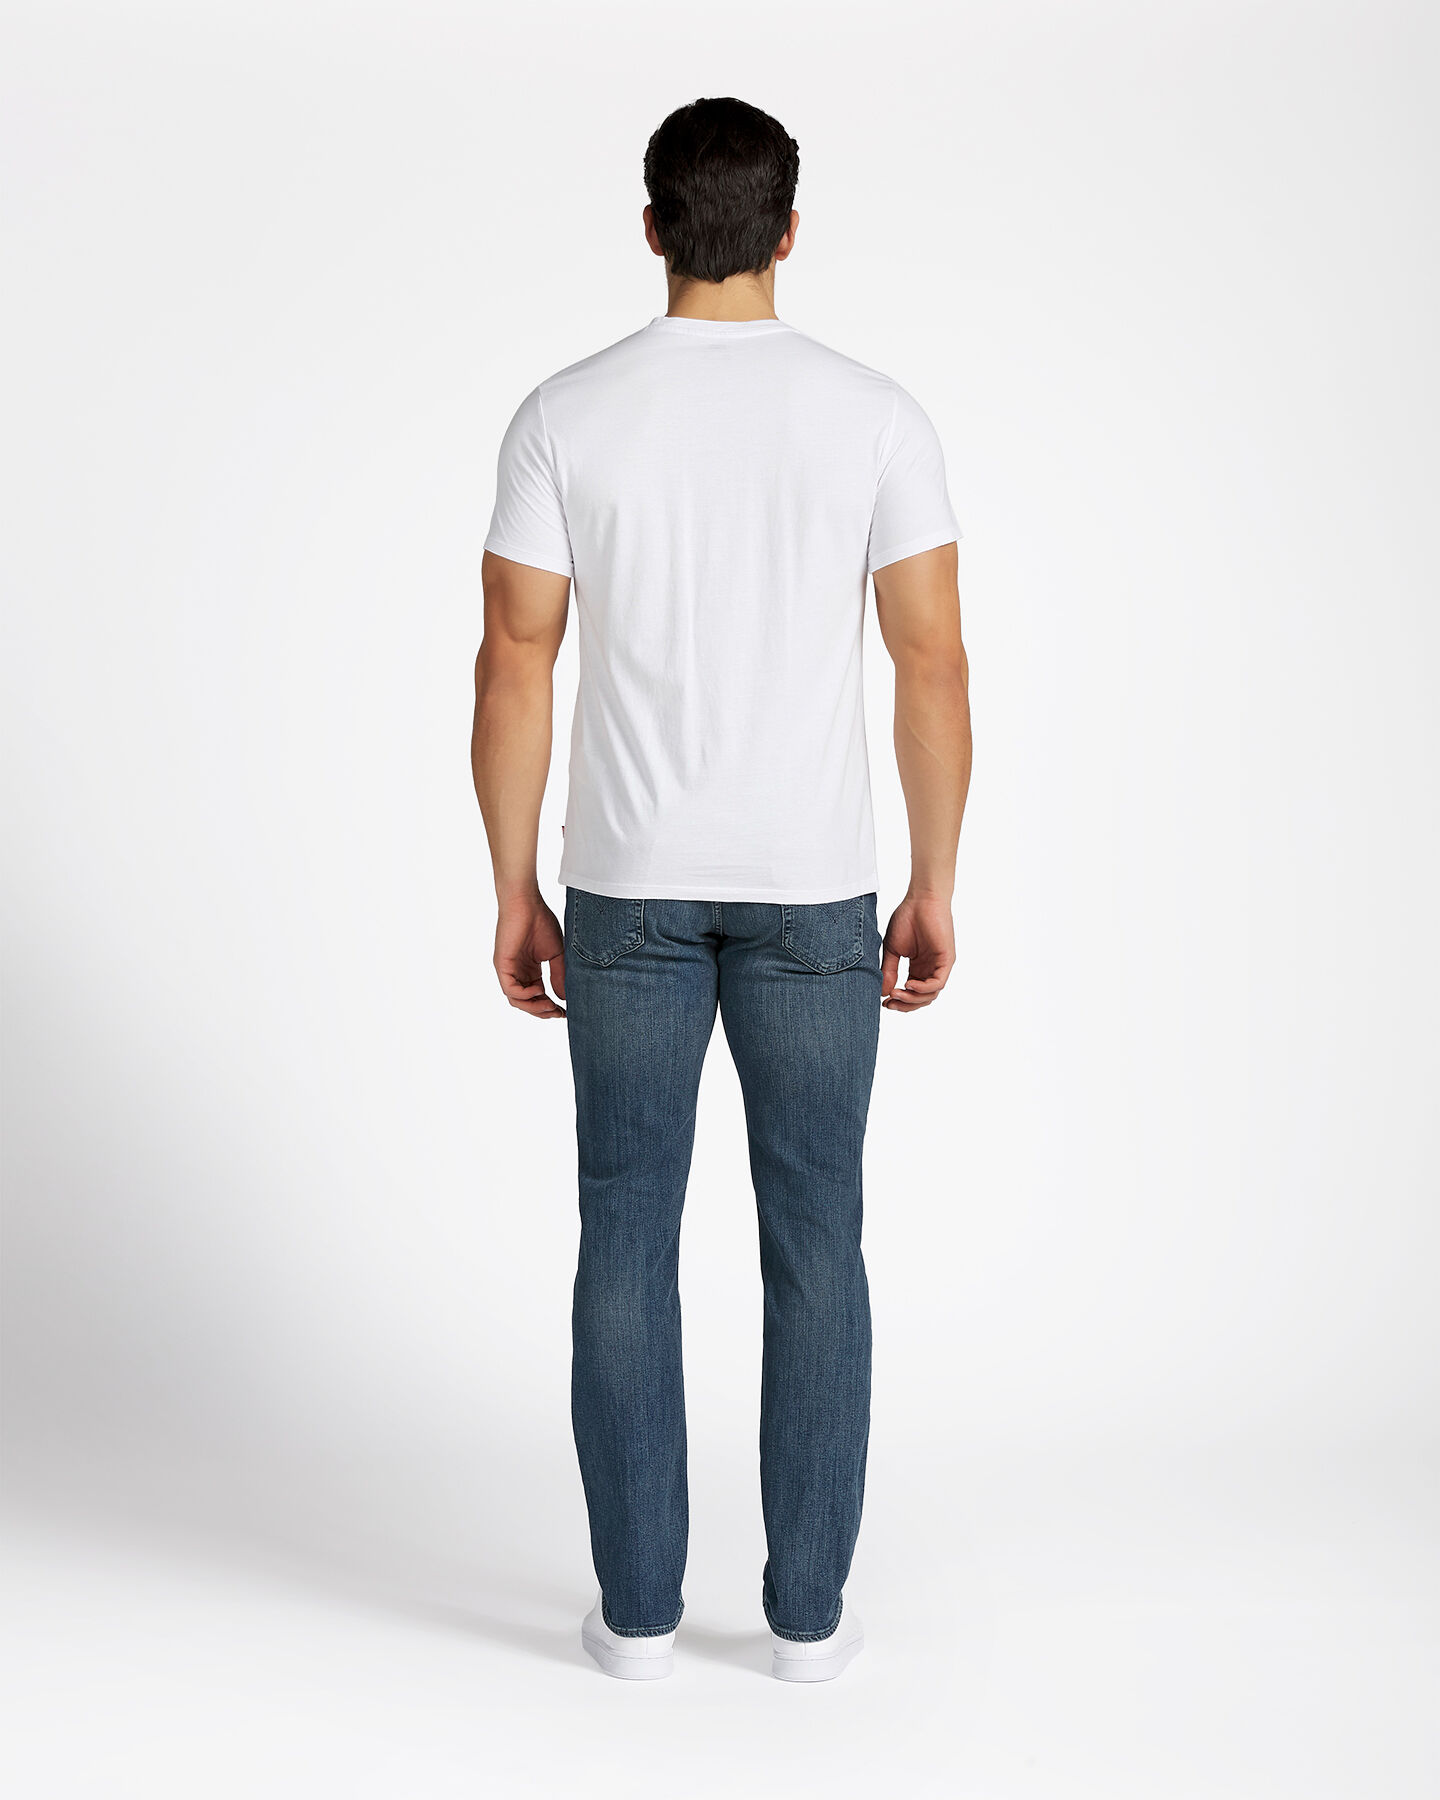 T-Shirt LEVI'S HOUSEMARK M S4064491 scatto 2